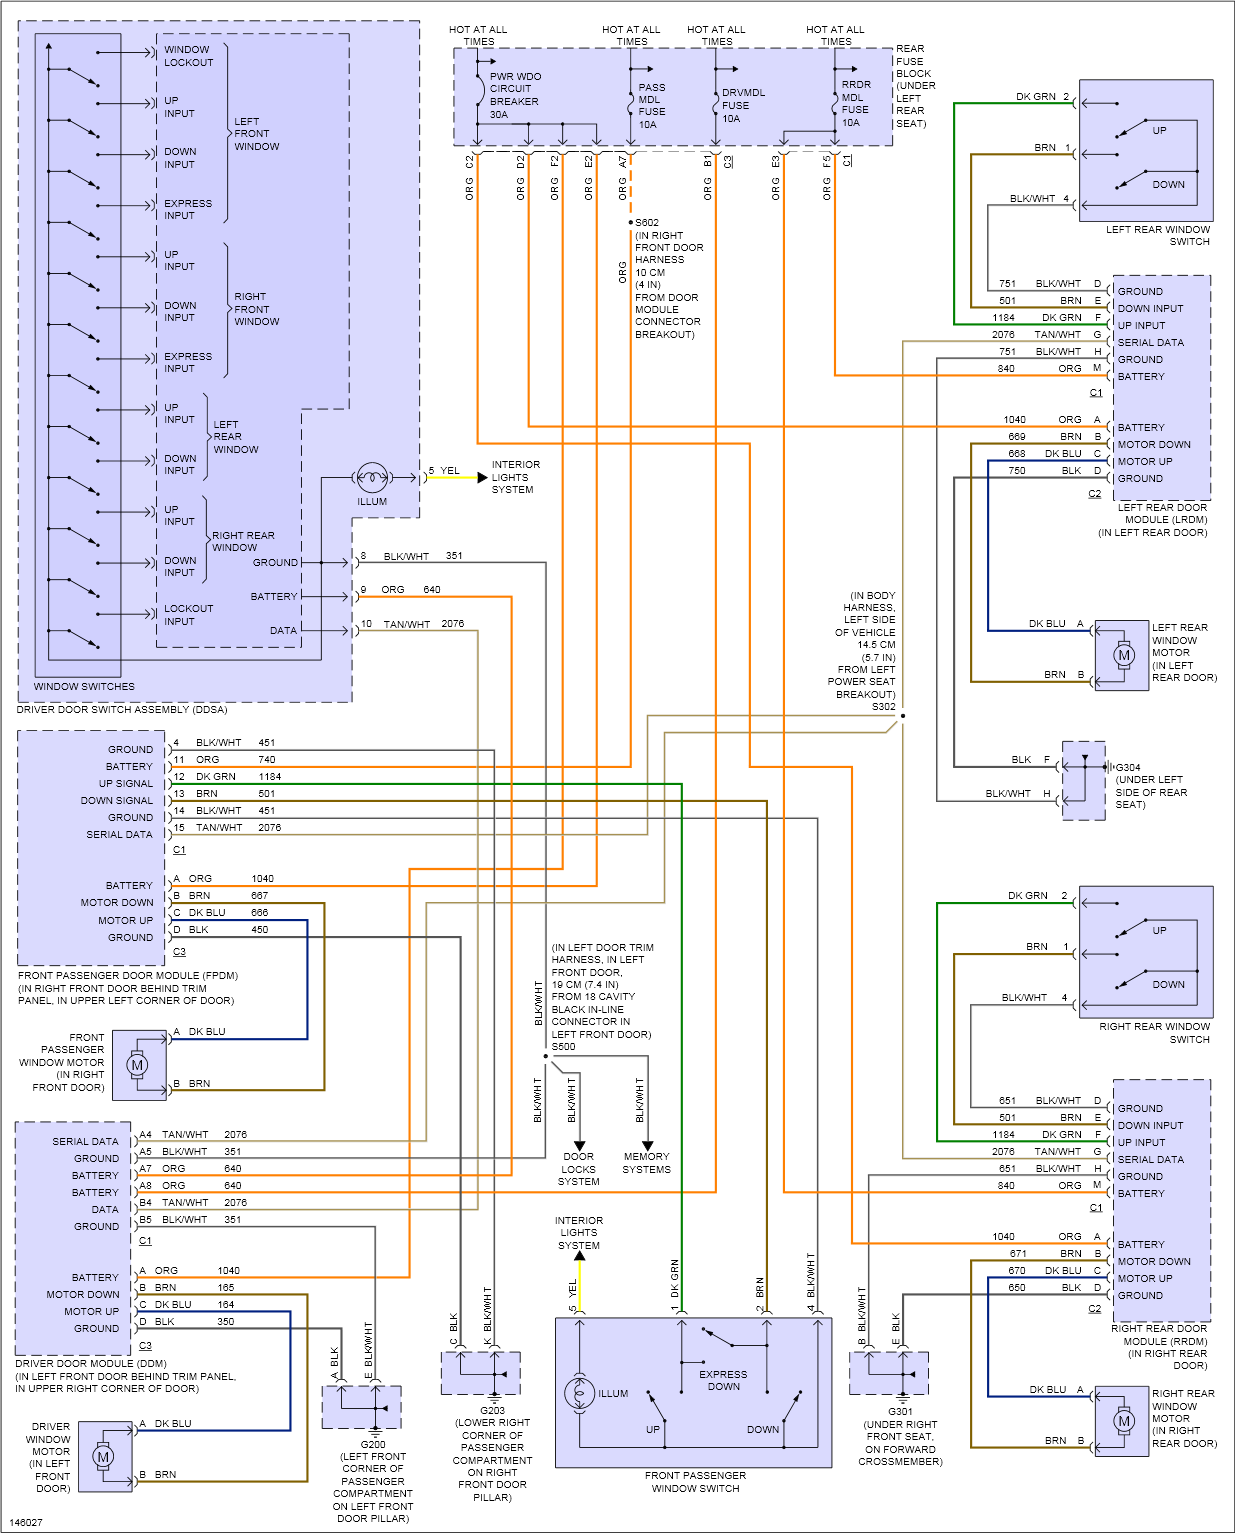 wiring diagram 2001 buick lesabre i have a 2001 buick lesabre. the windows, door locks, etc ... #1